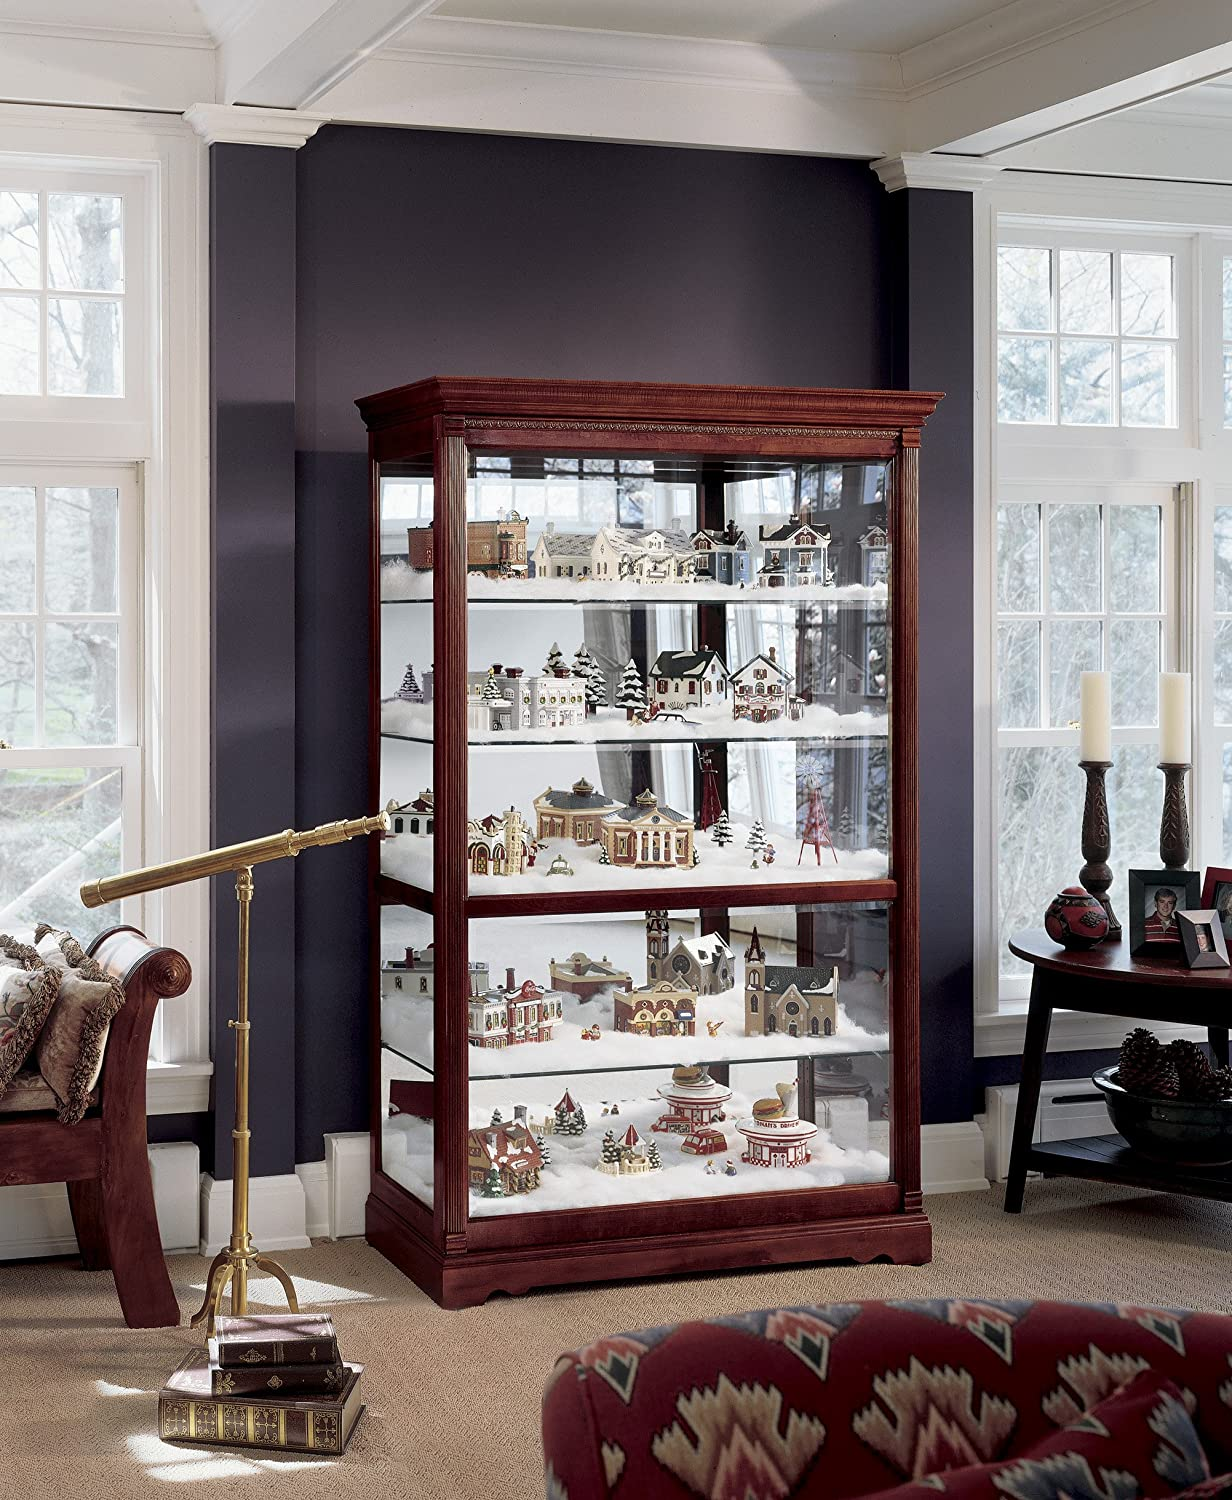 Amazon.com: Howard Miller 680 235 Townsend Curio Cabinet By: Kitchen U0026  Dining